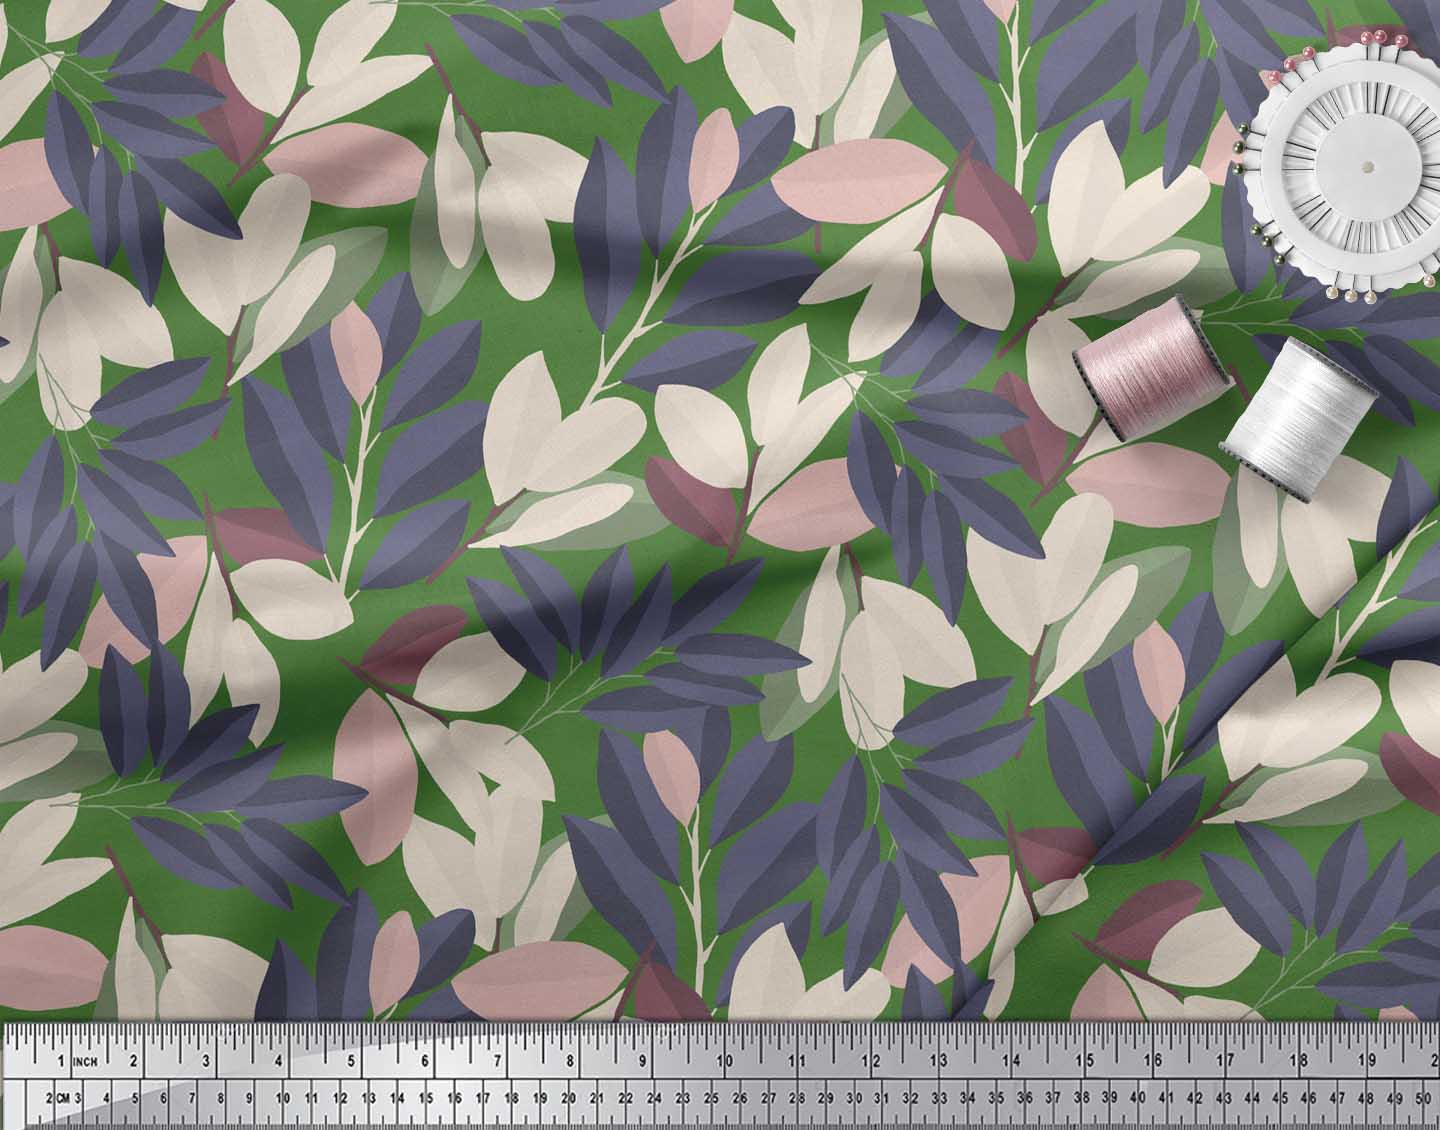 Soimoi-Green-Cotton-Poplin-Fabric-Laurel-Leaves-Print-Sewing-Fabric-aSZ thumbnail 4